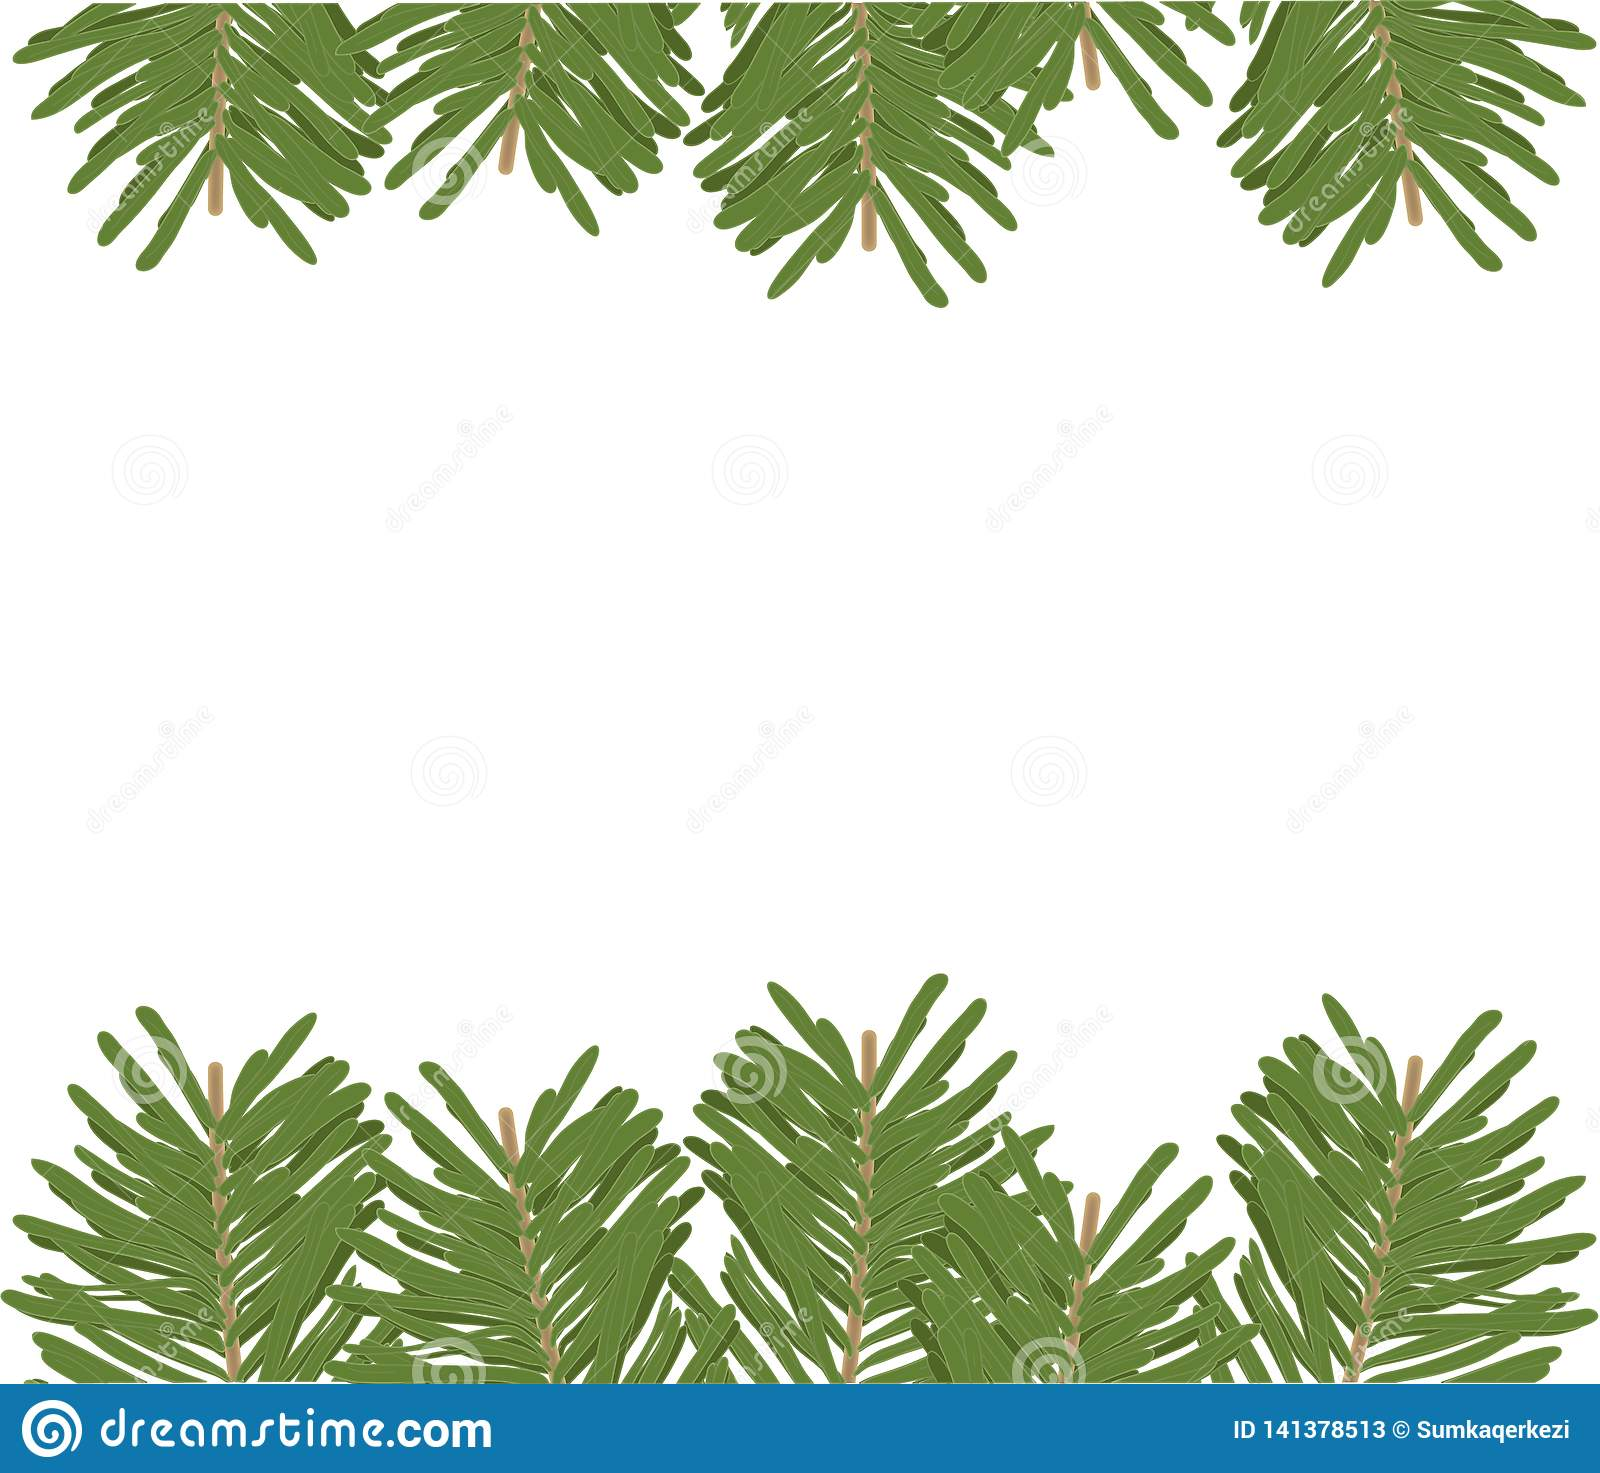 Background template in fir trees.